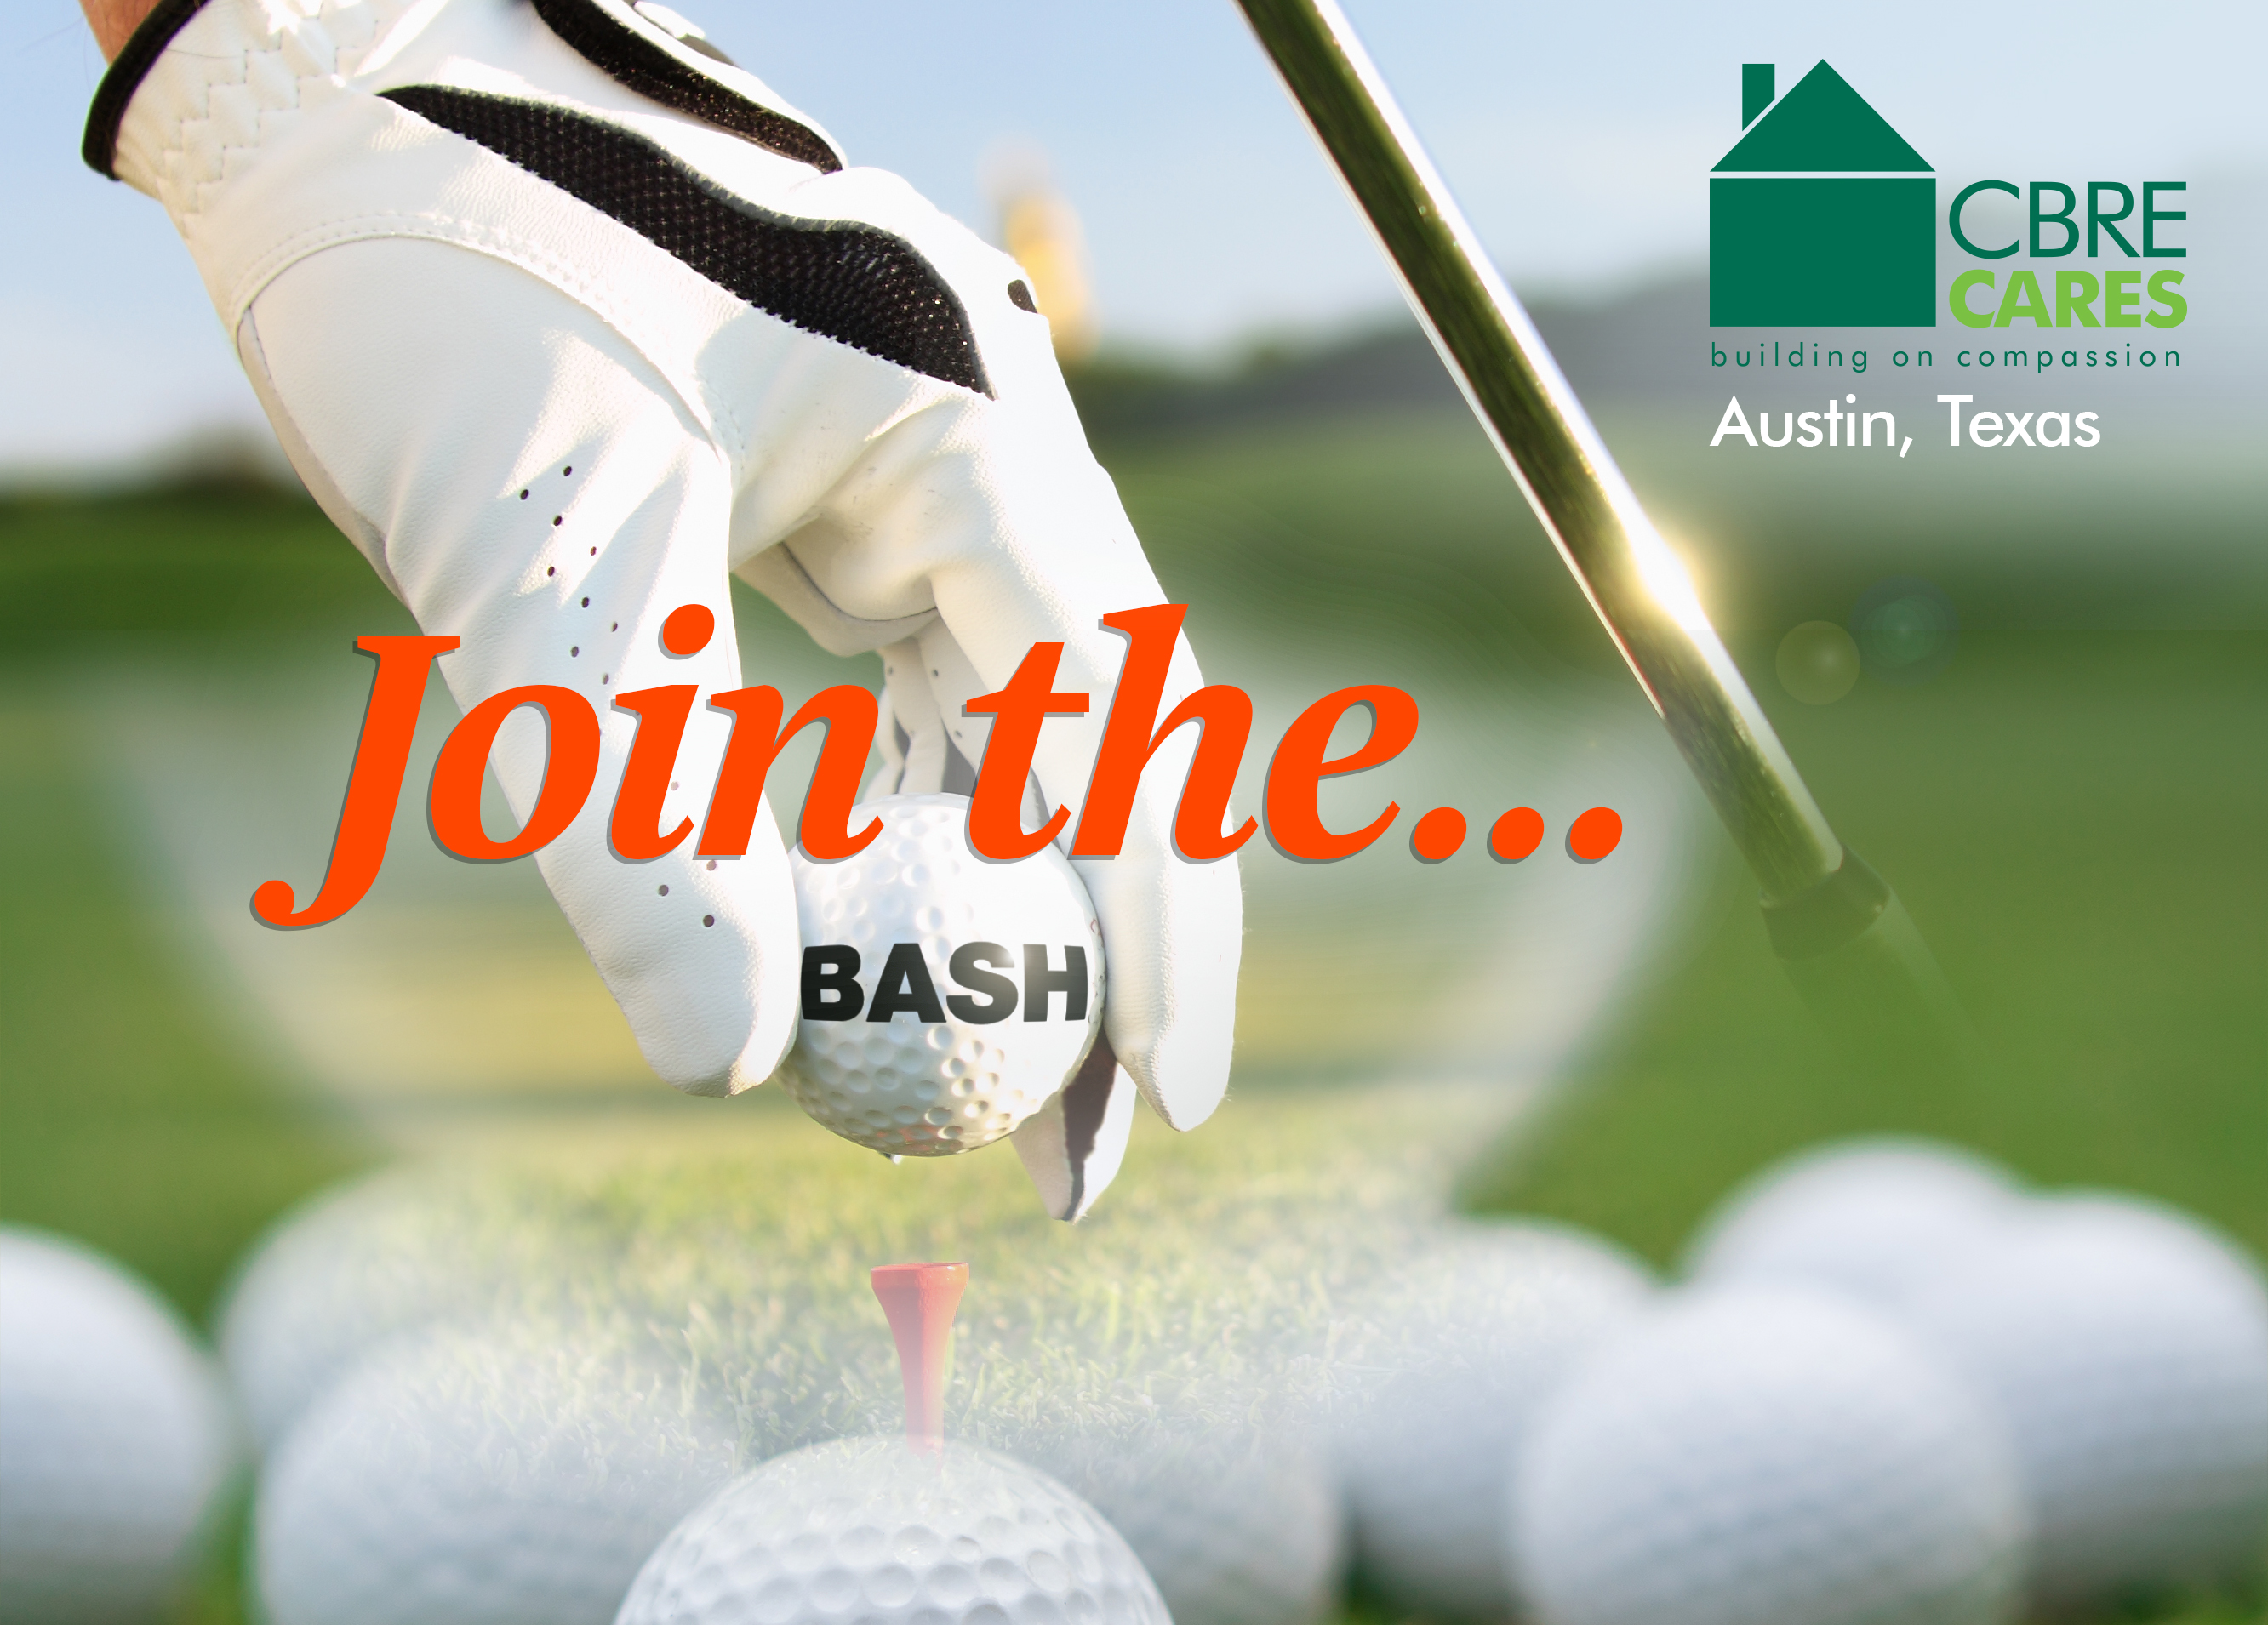 CBRE Cares Charity Golf Bash — Austin — May 7, 2019